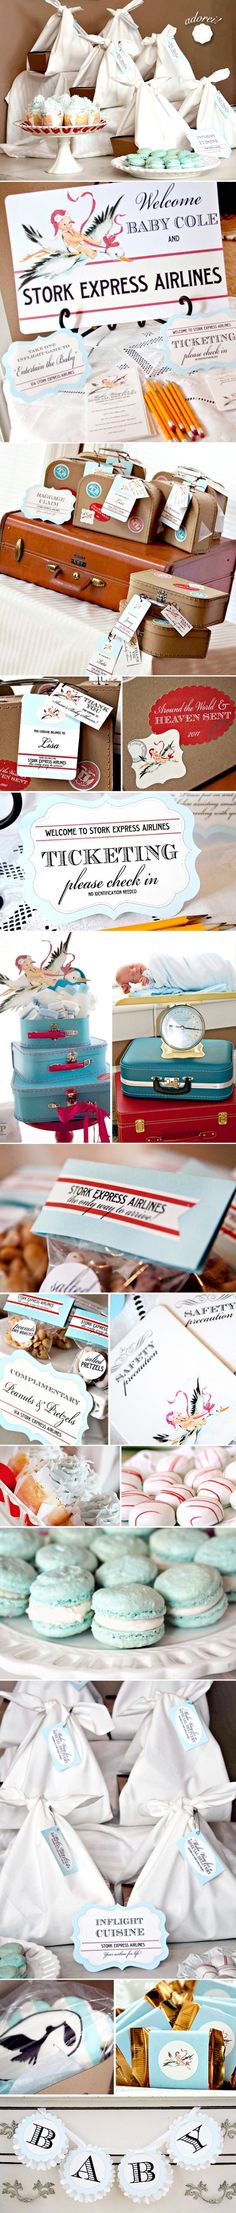 baby shower with travel theme.